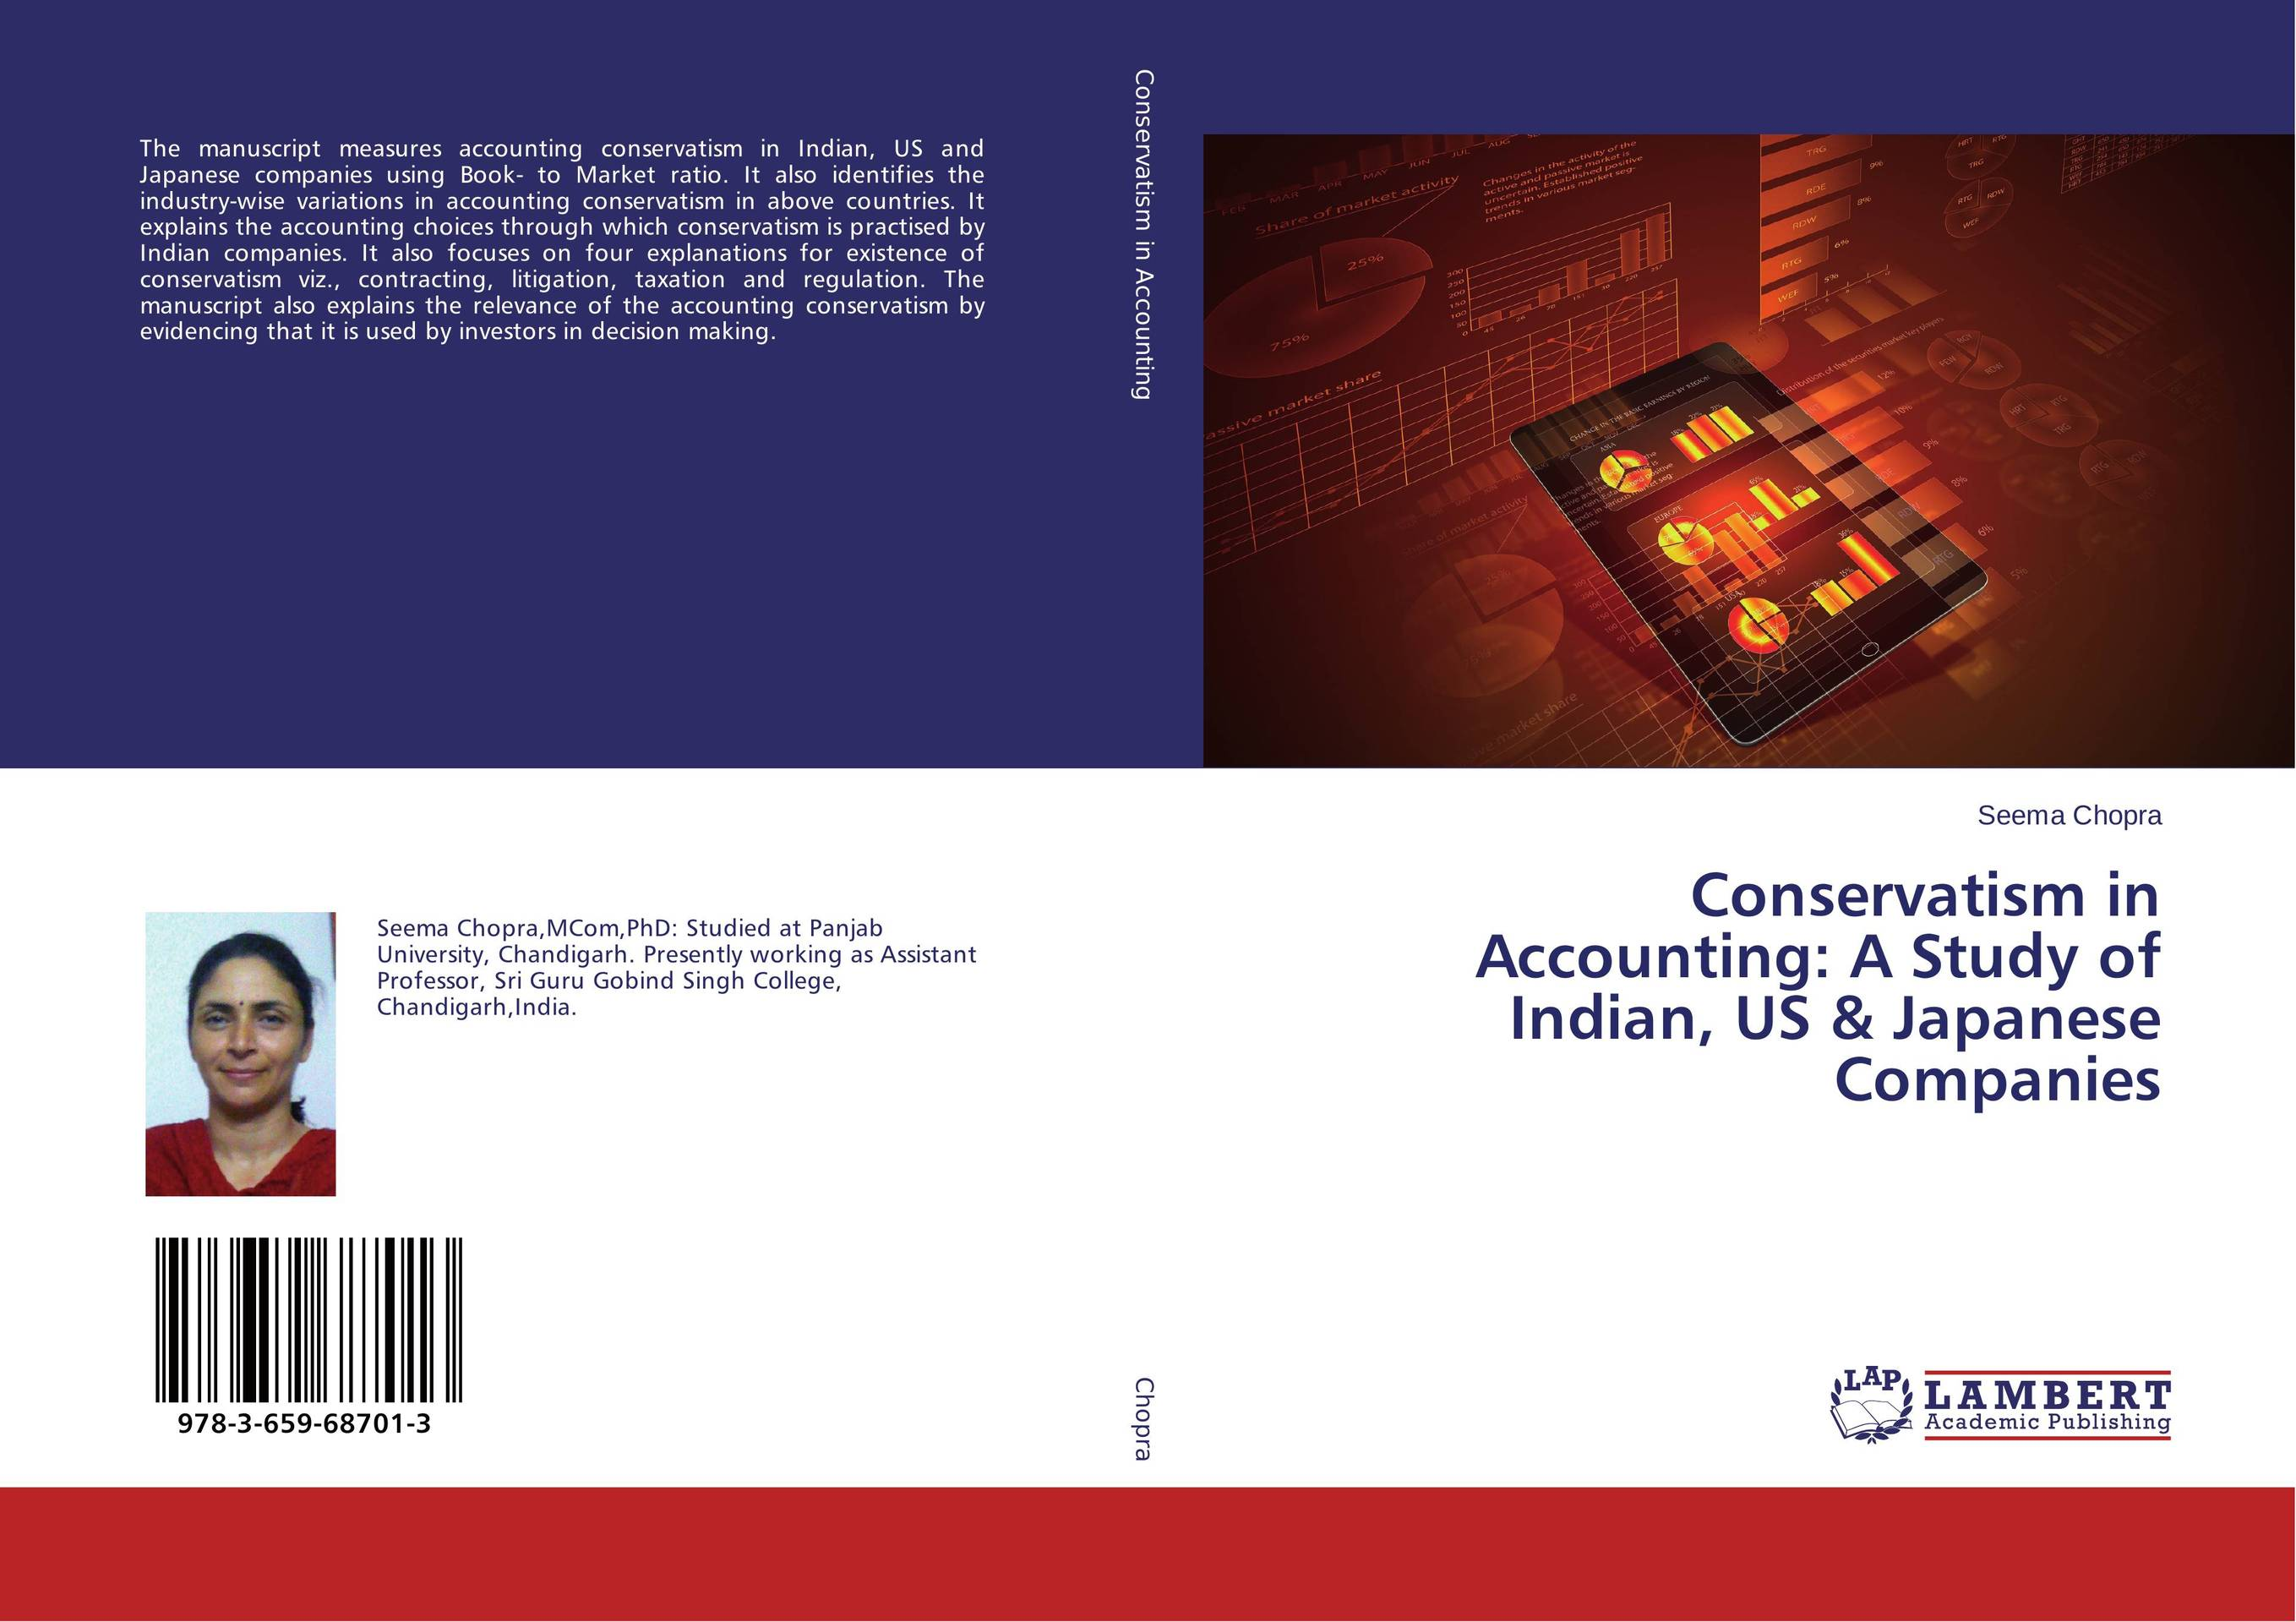 Conservatism in Accounting: A Study of Indian, US & Japanese Companies manuscript found in accra